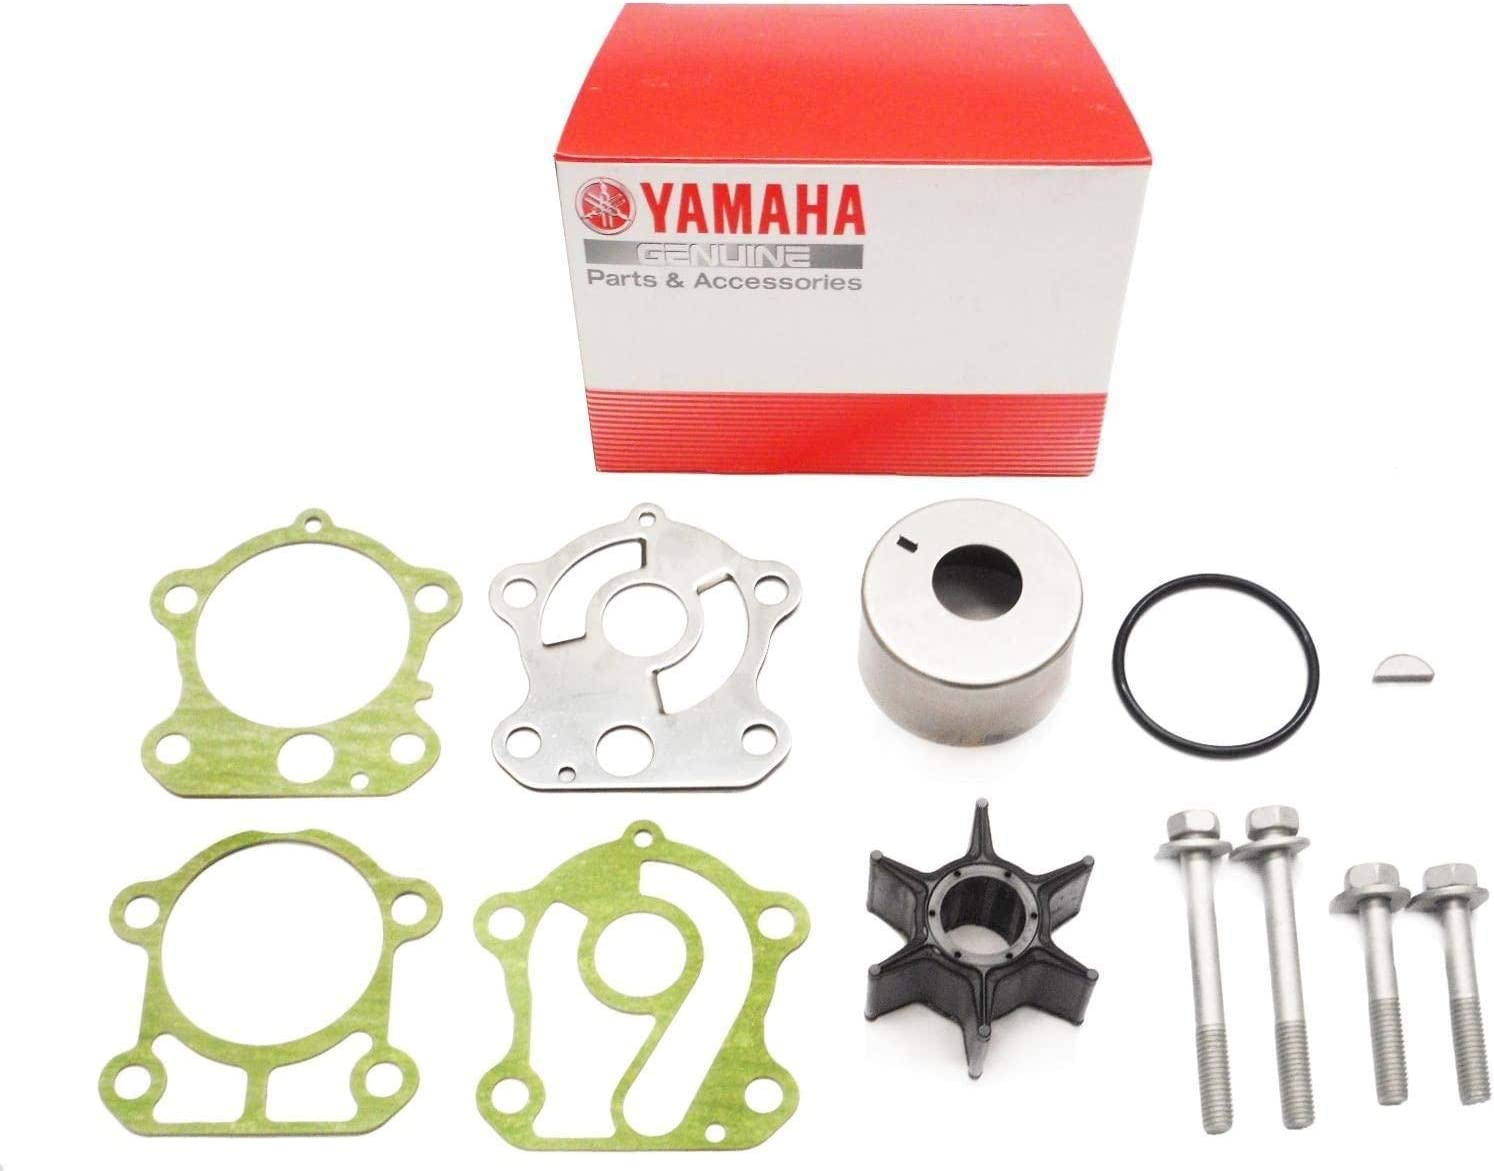 New Yamaha Water Pump Impeller Repair Kit for 60-90hp Outboards 692-W0078-02